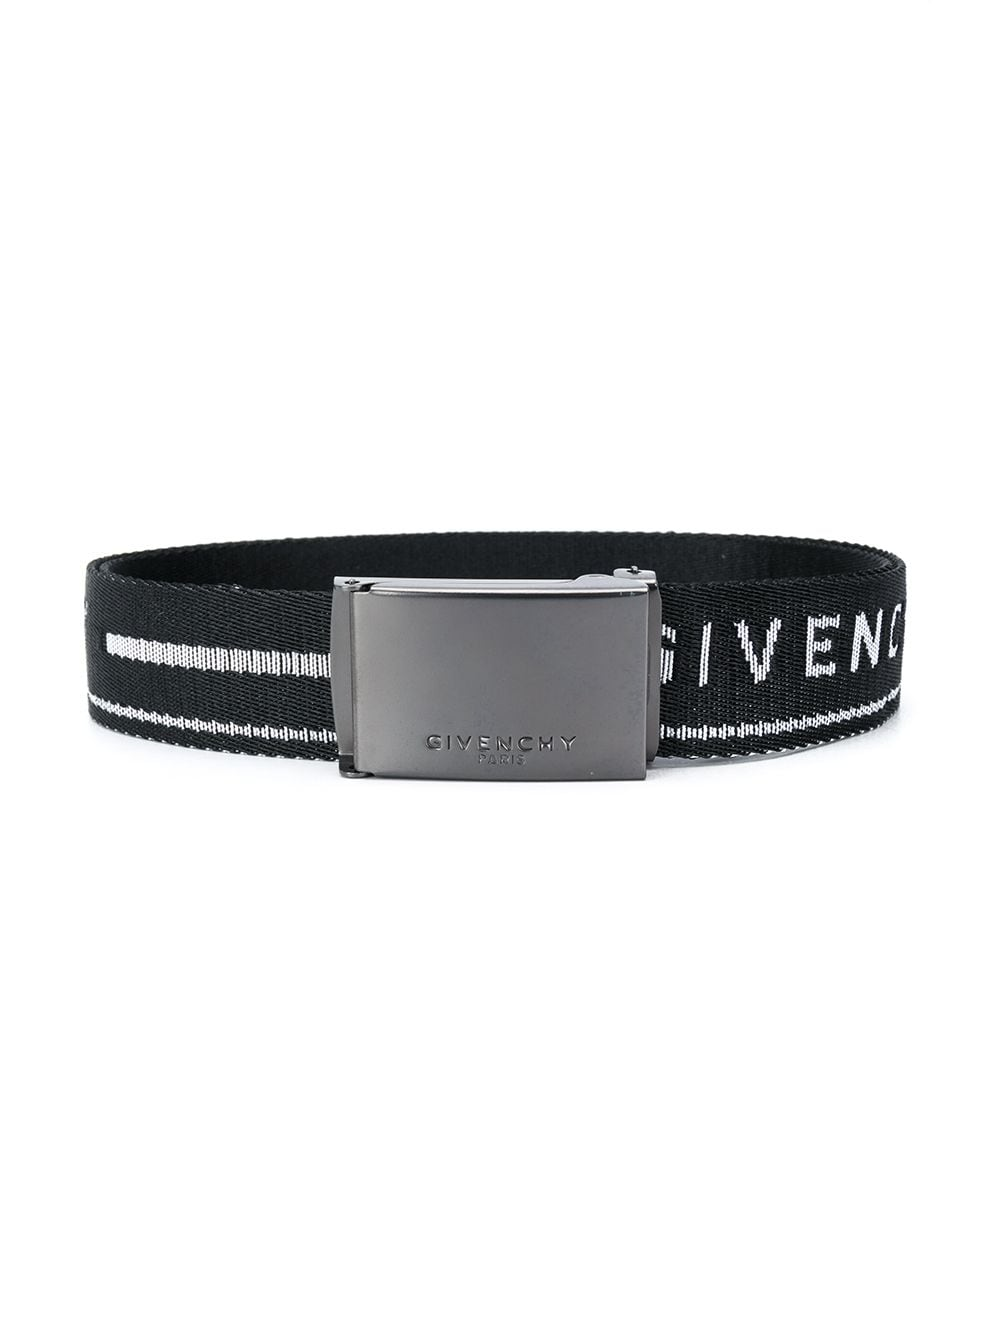 GIVENCHY KIDS Logo Stripe Belt Black